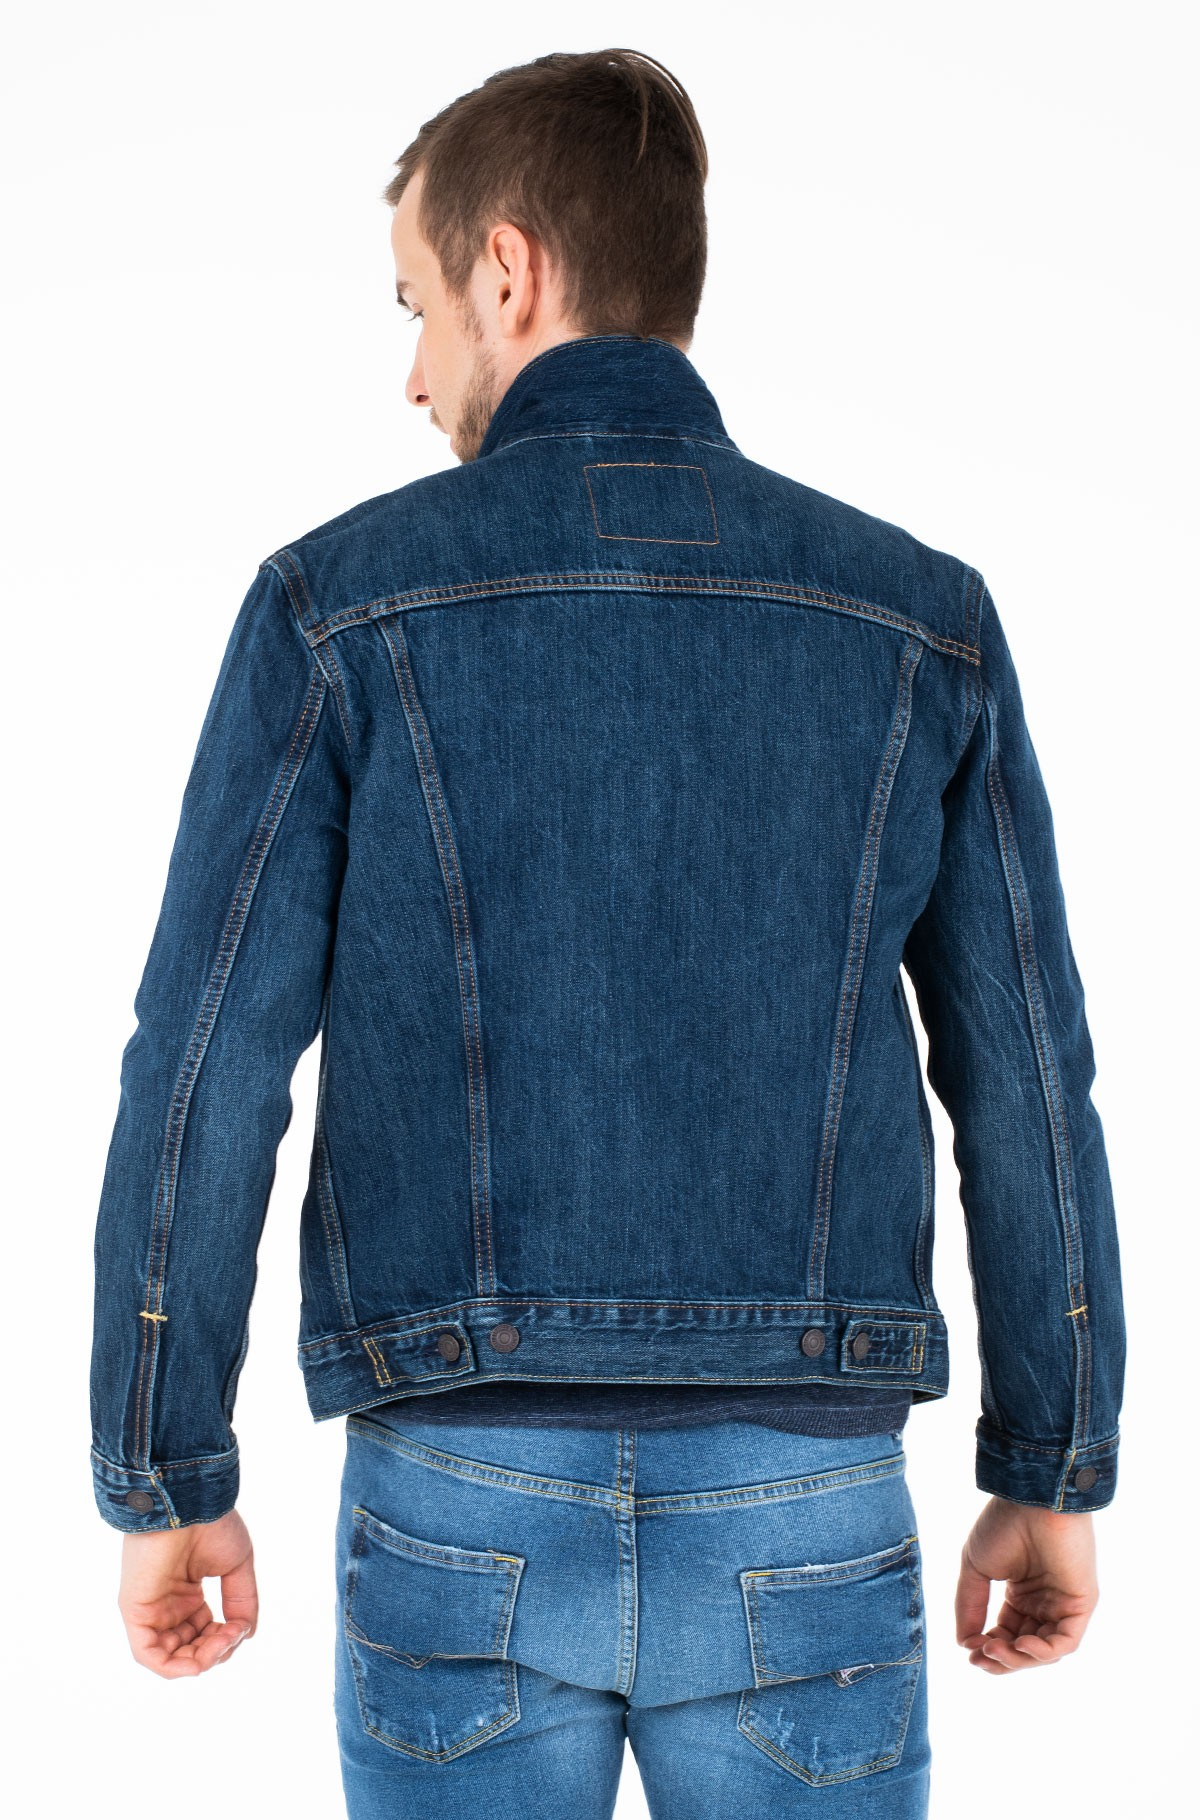 Denim jacket 723340352-full-2